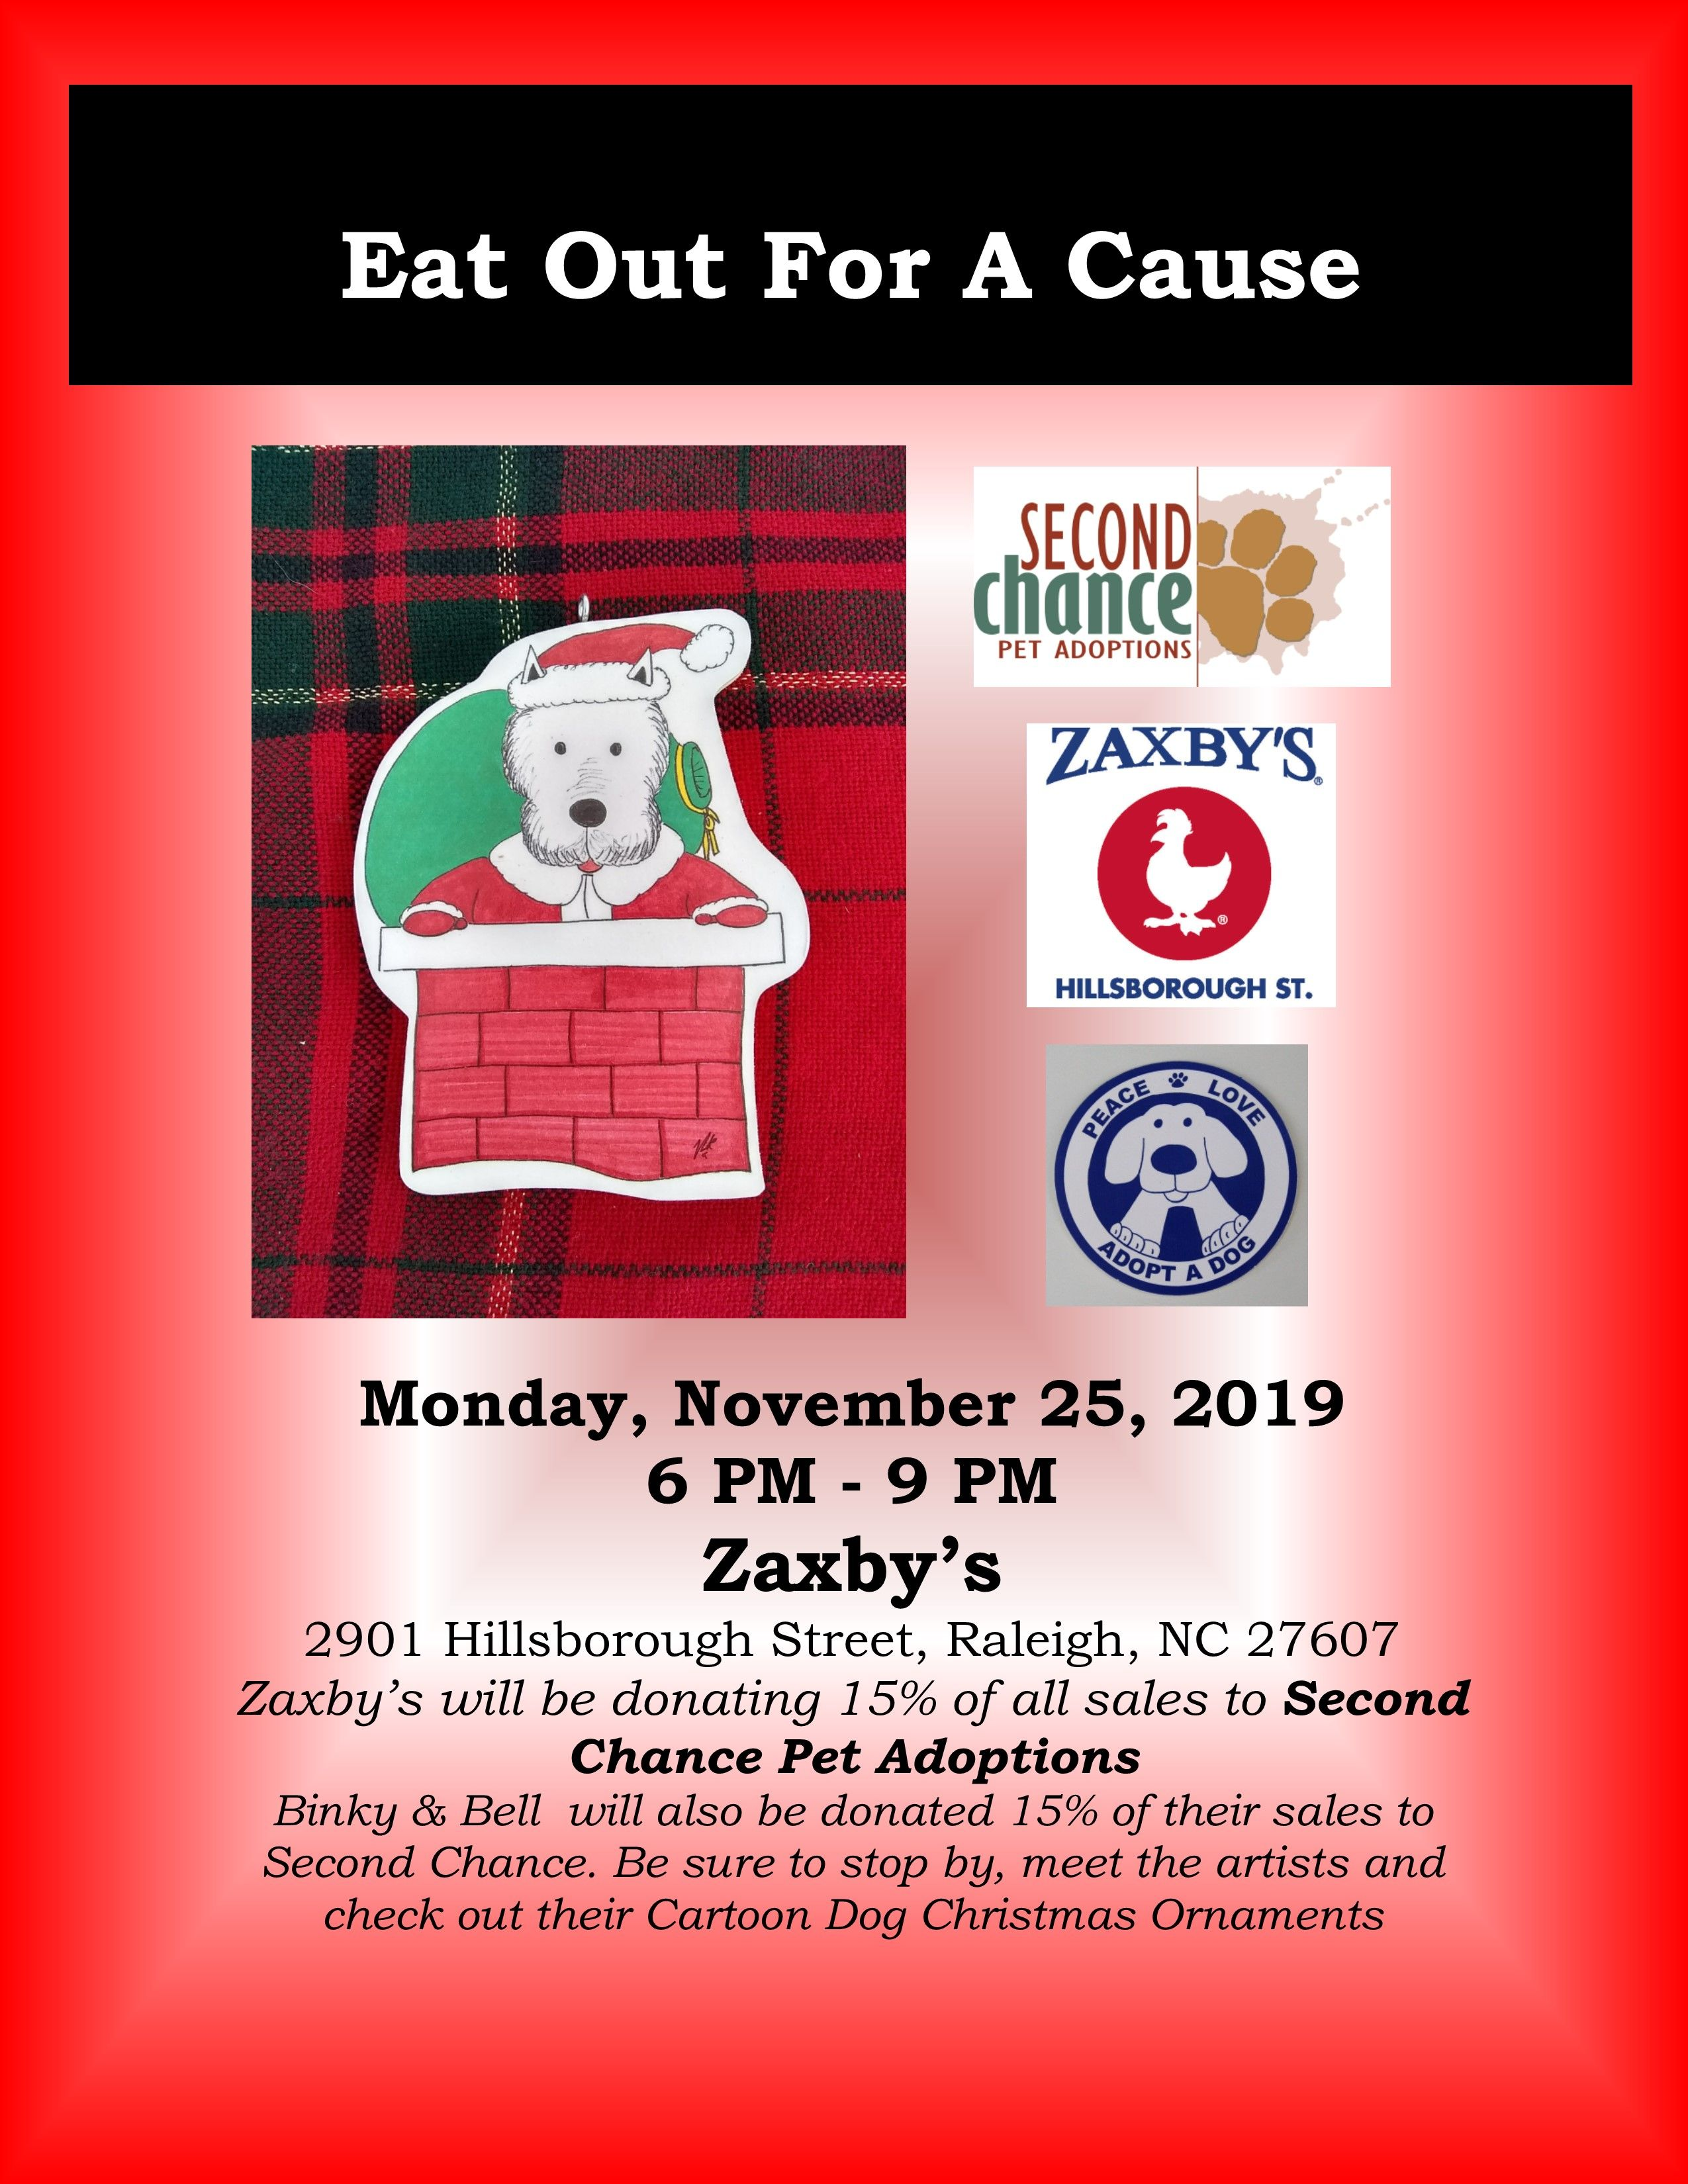 Join Binky & Bell, Zaxby's and secondchancepet for Eat